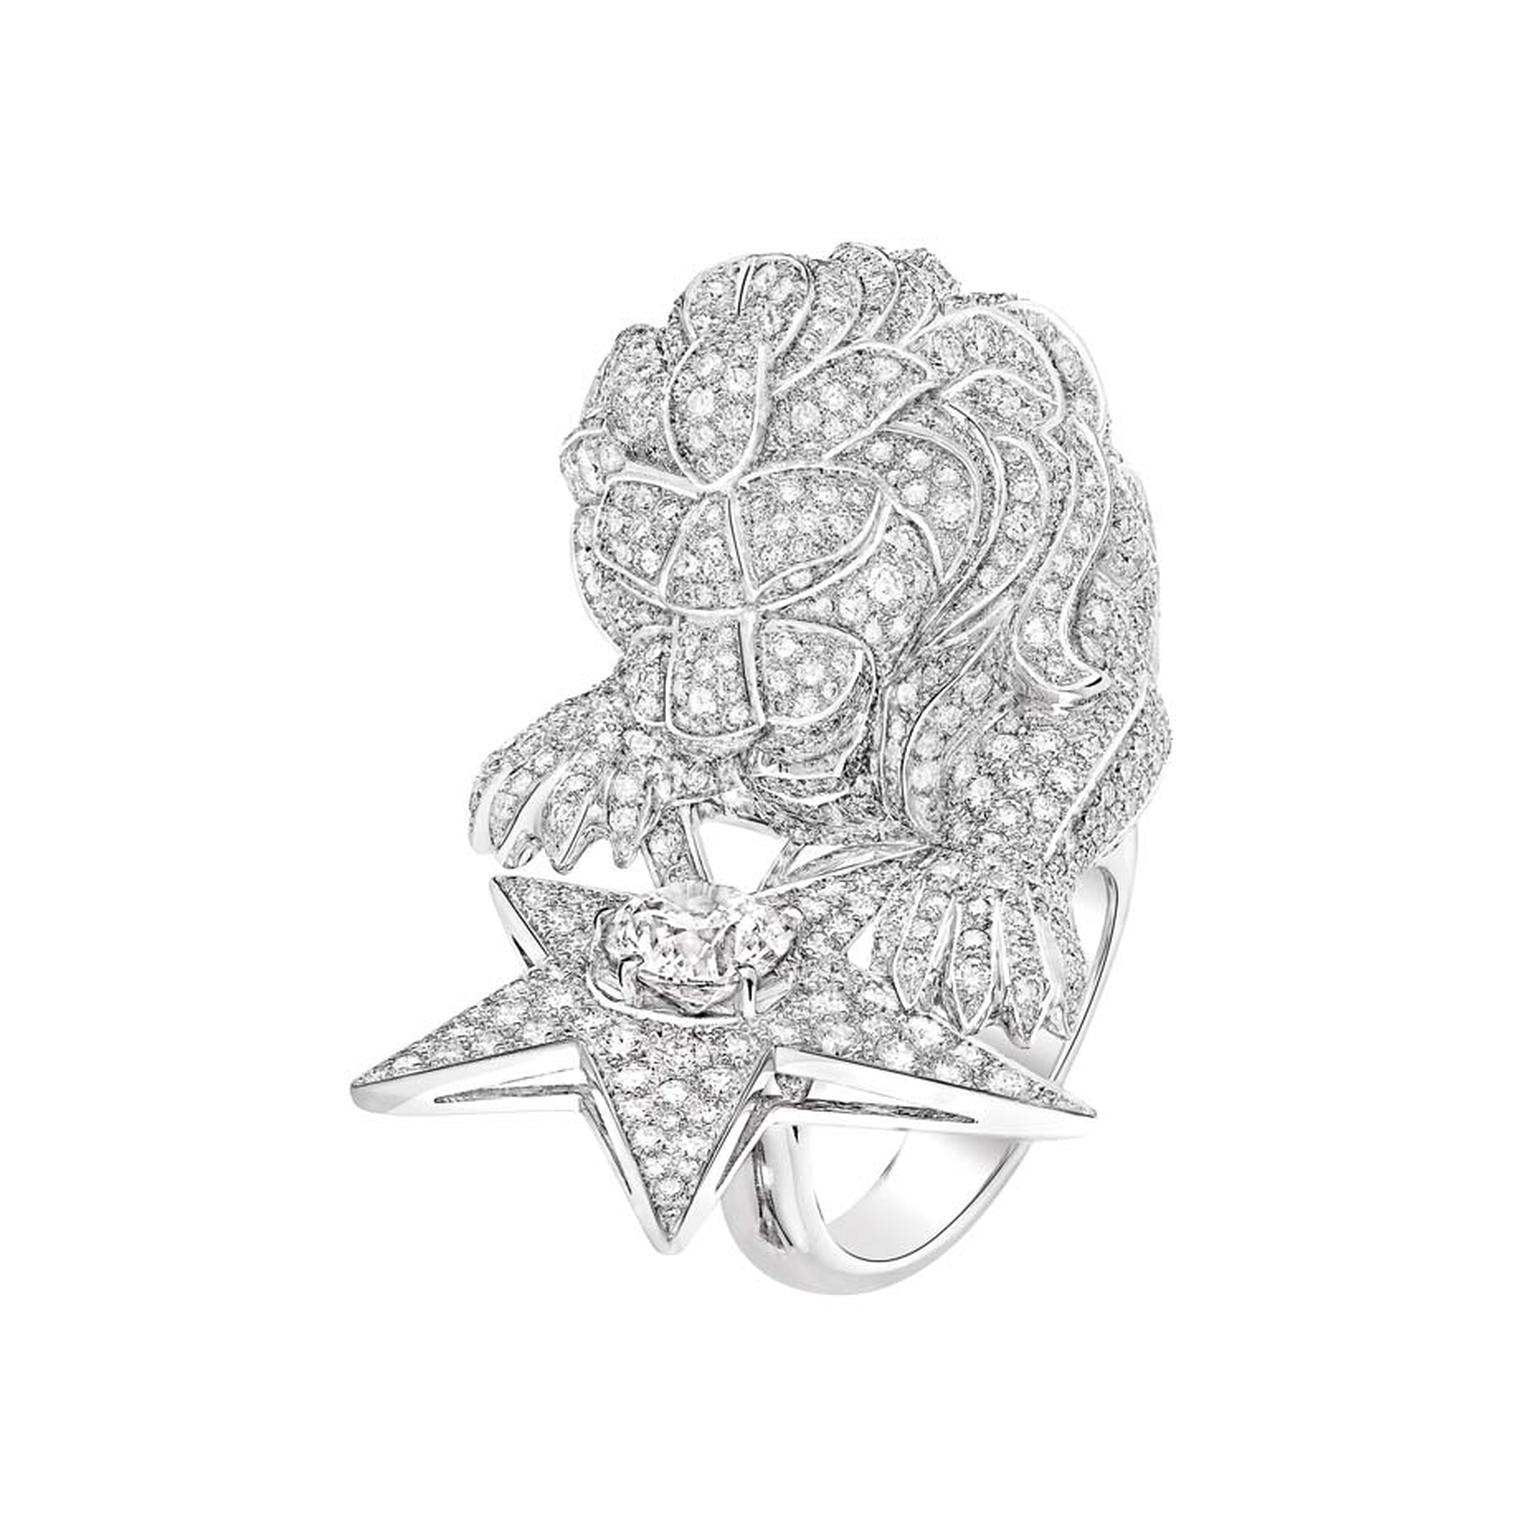 Chanel's Constellation du Lion ring from the new Les Intemporels high jewellery collection is available in two designs. This version features a regal lion covered in diamonds guarding a sparkling star.